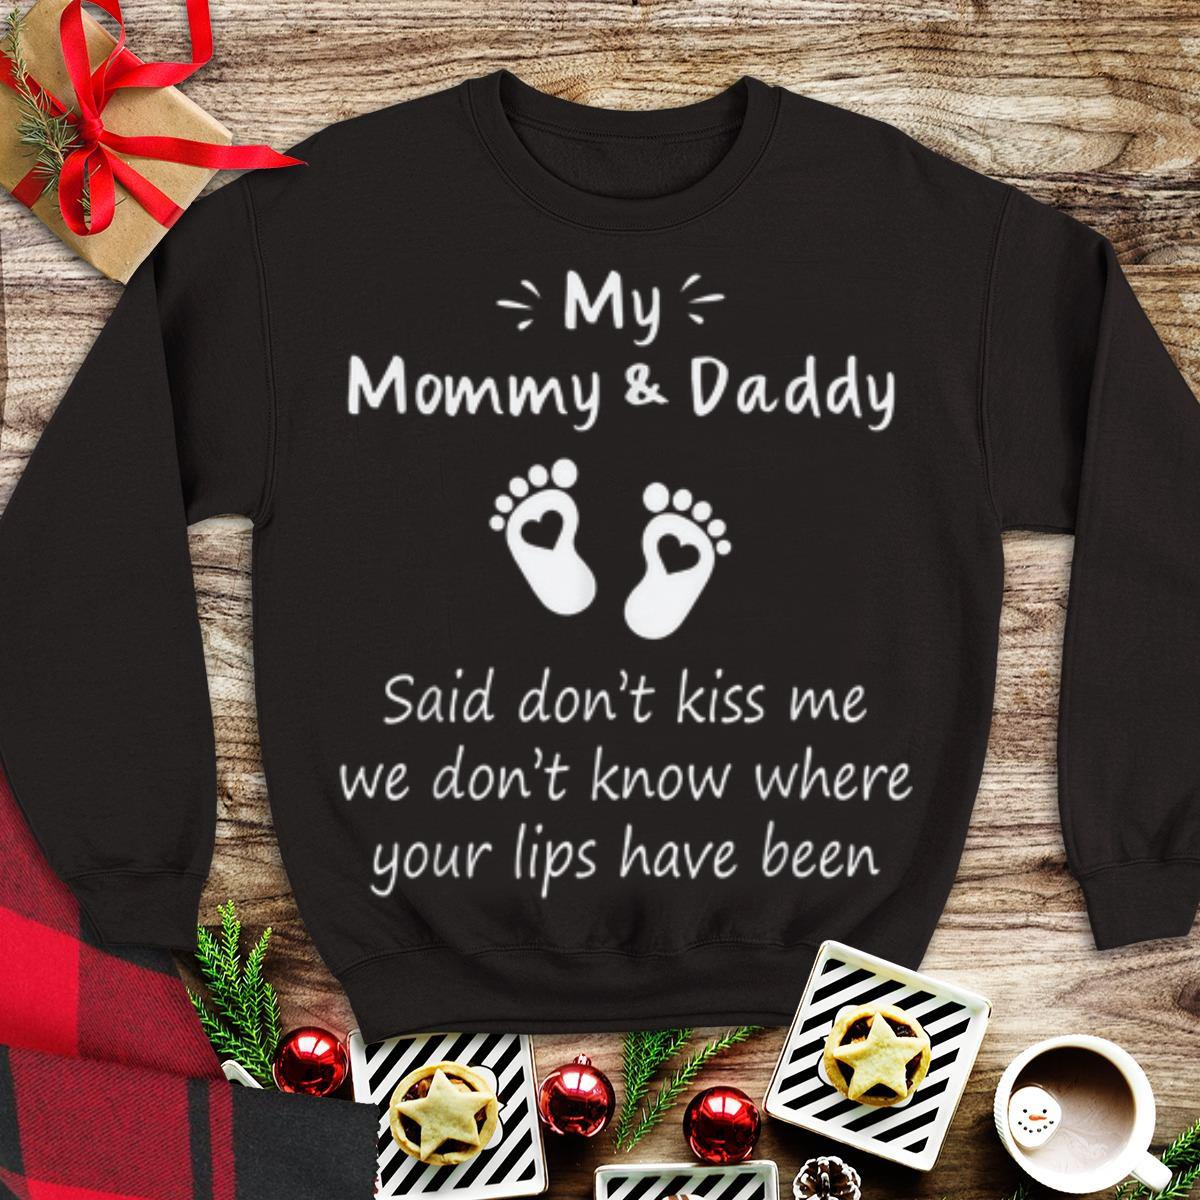 Awesome My Mommy And Daddy Said Don't Kiss Me We Don't Know Where Your Lips Have Been shirt